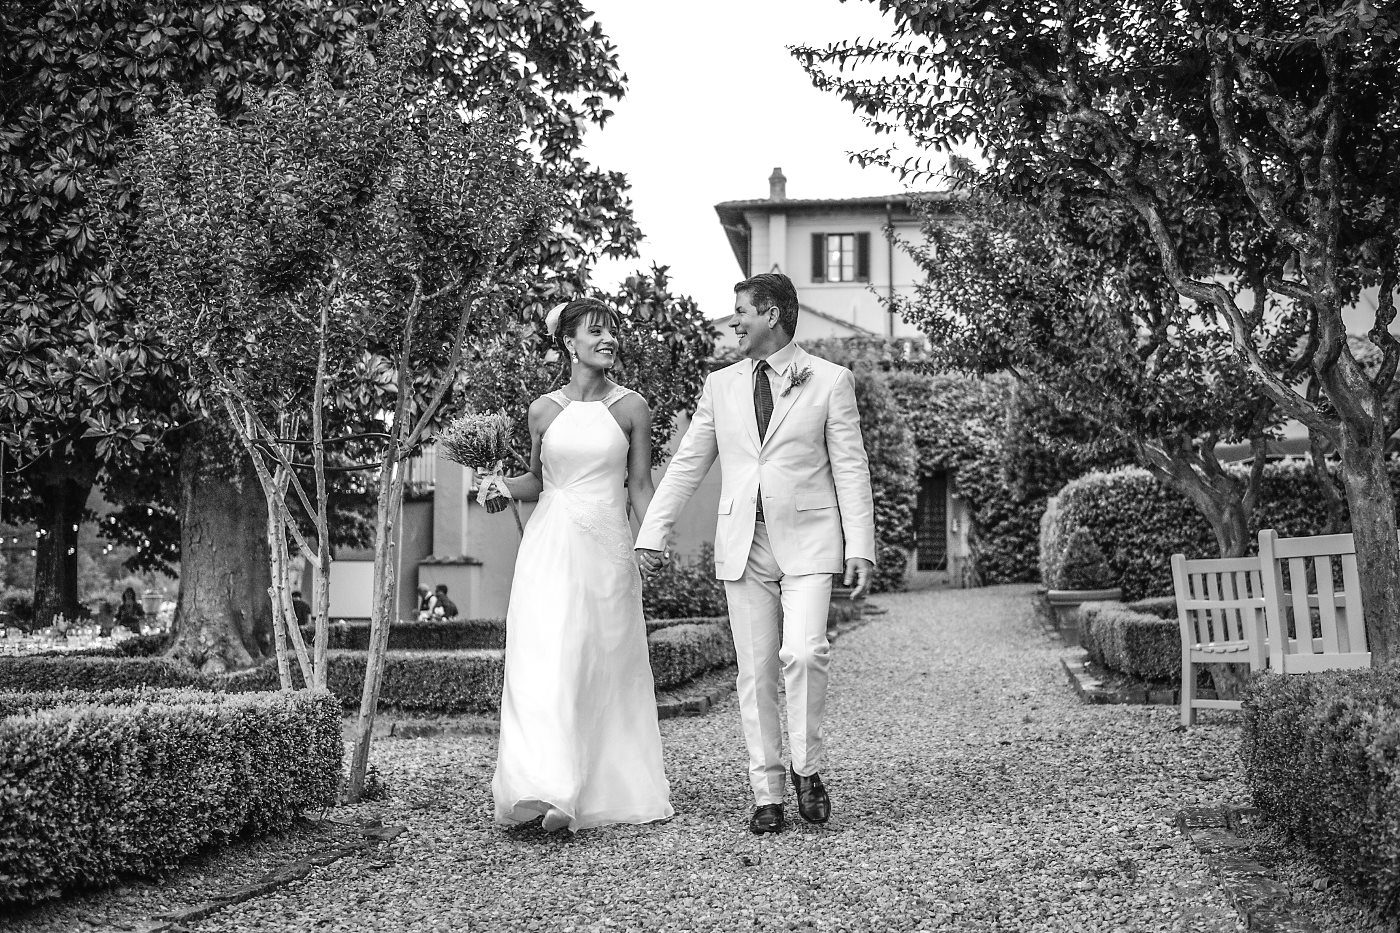 wedding photo villa dievole_18.jpg